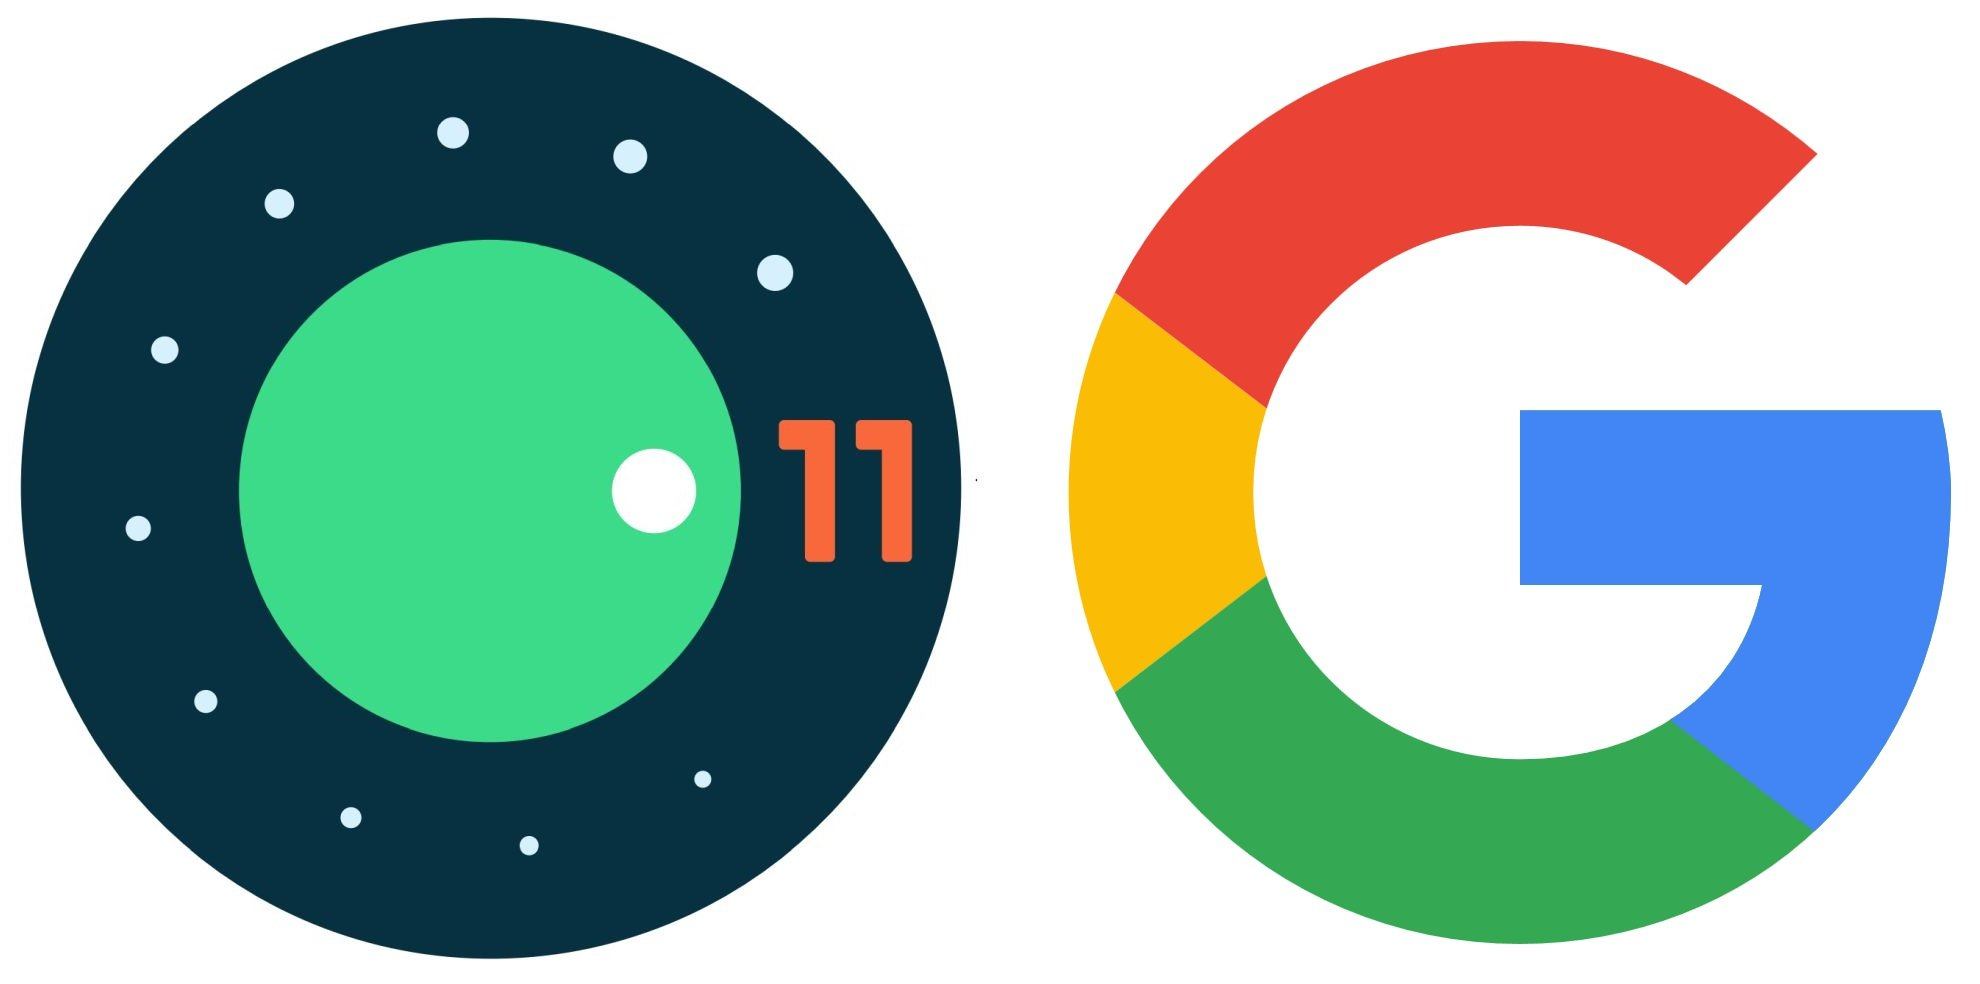 android 11 google logo separate